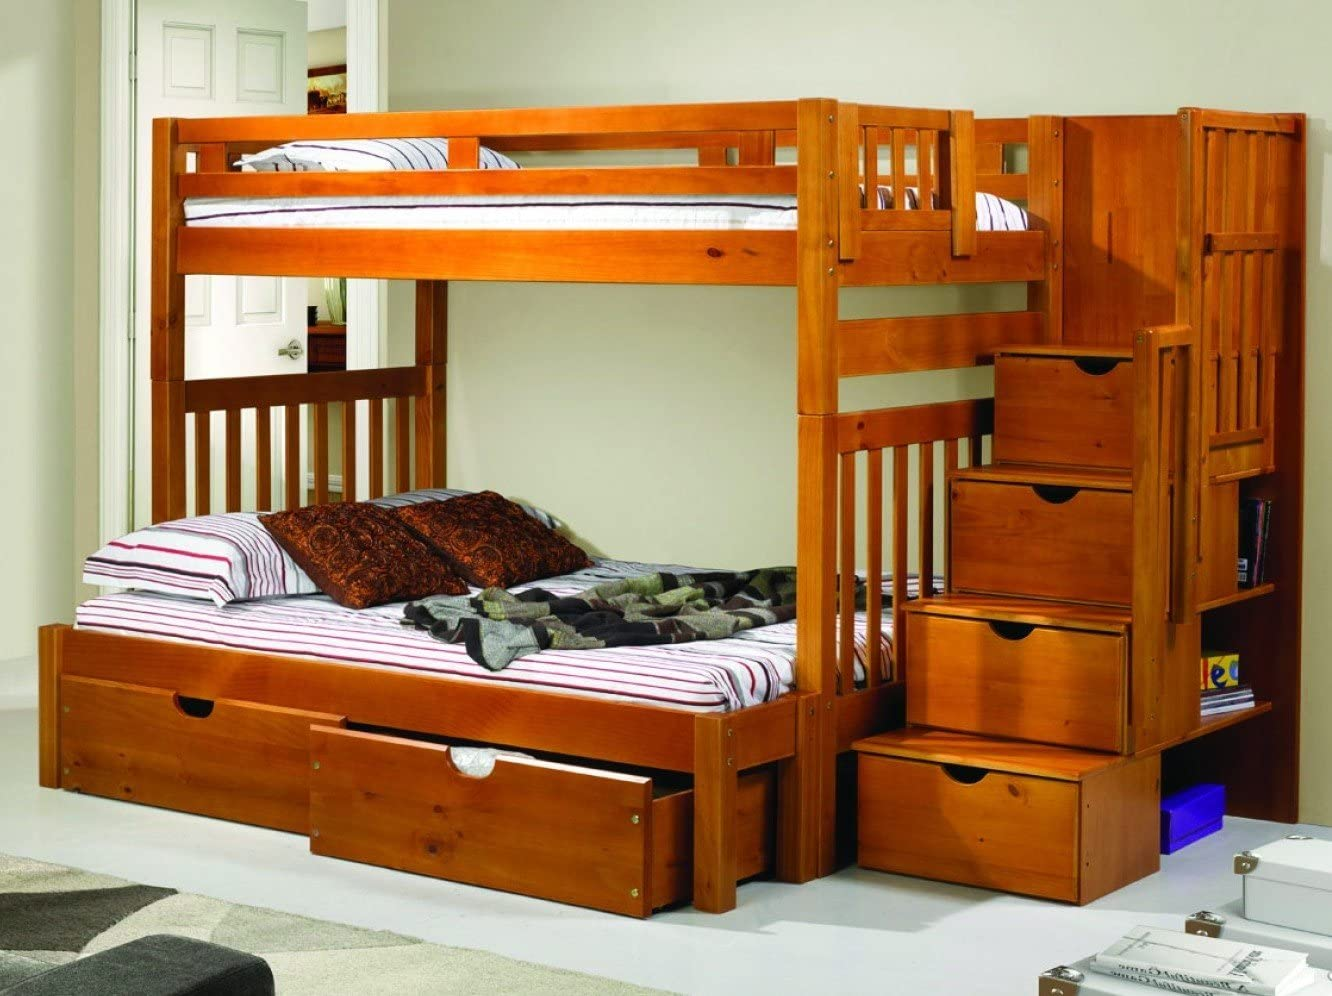 Amazon.com: Bunk Beds for Adults or Youth Twin/Full with Storage, Shelves & Free Storage Pockets: Furniture & Decor